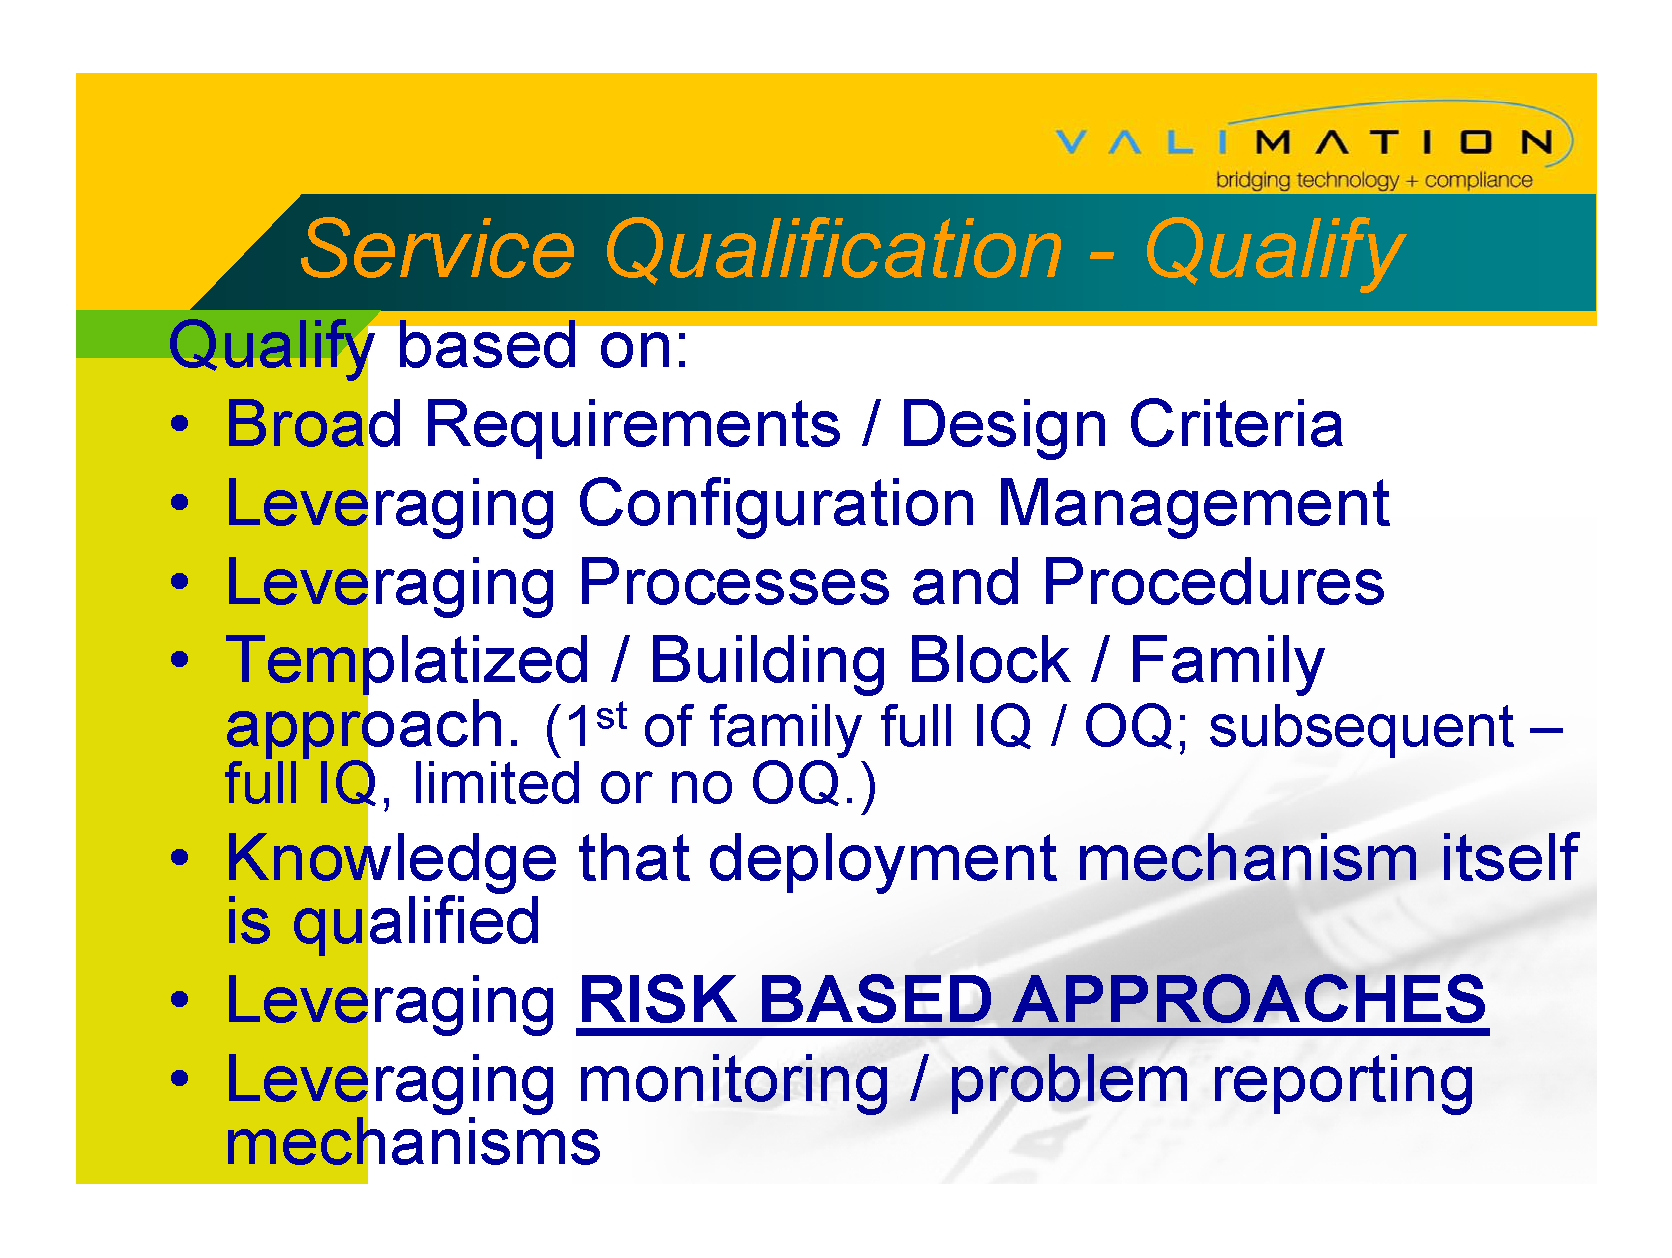 Network Qualification - Accretive Model By ValiMation_Page_14.png